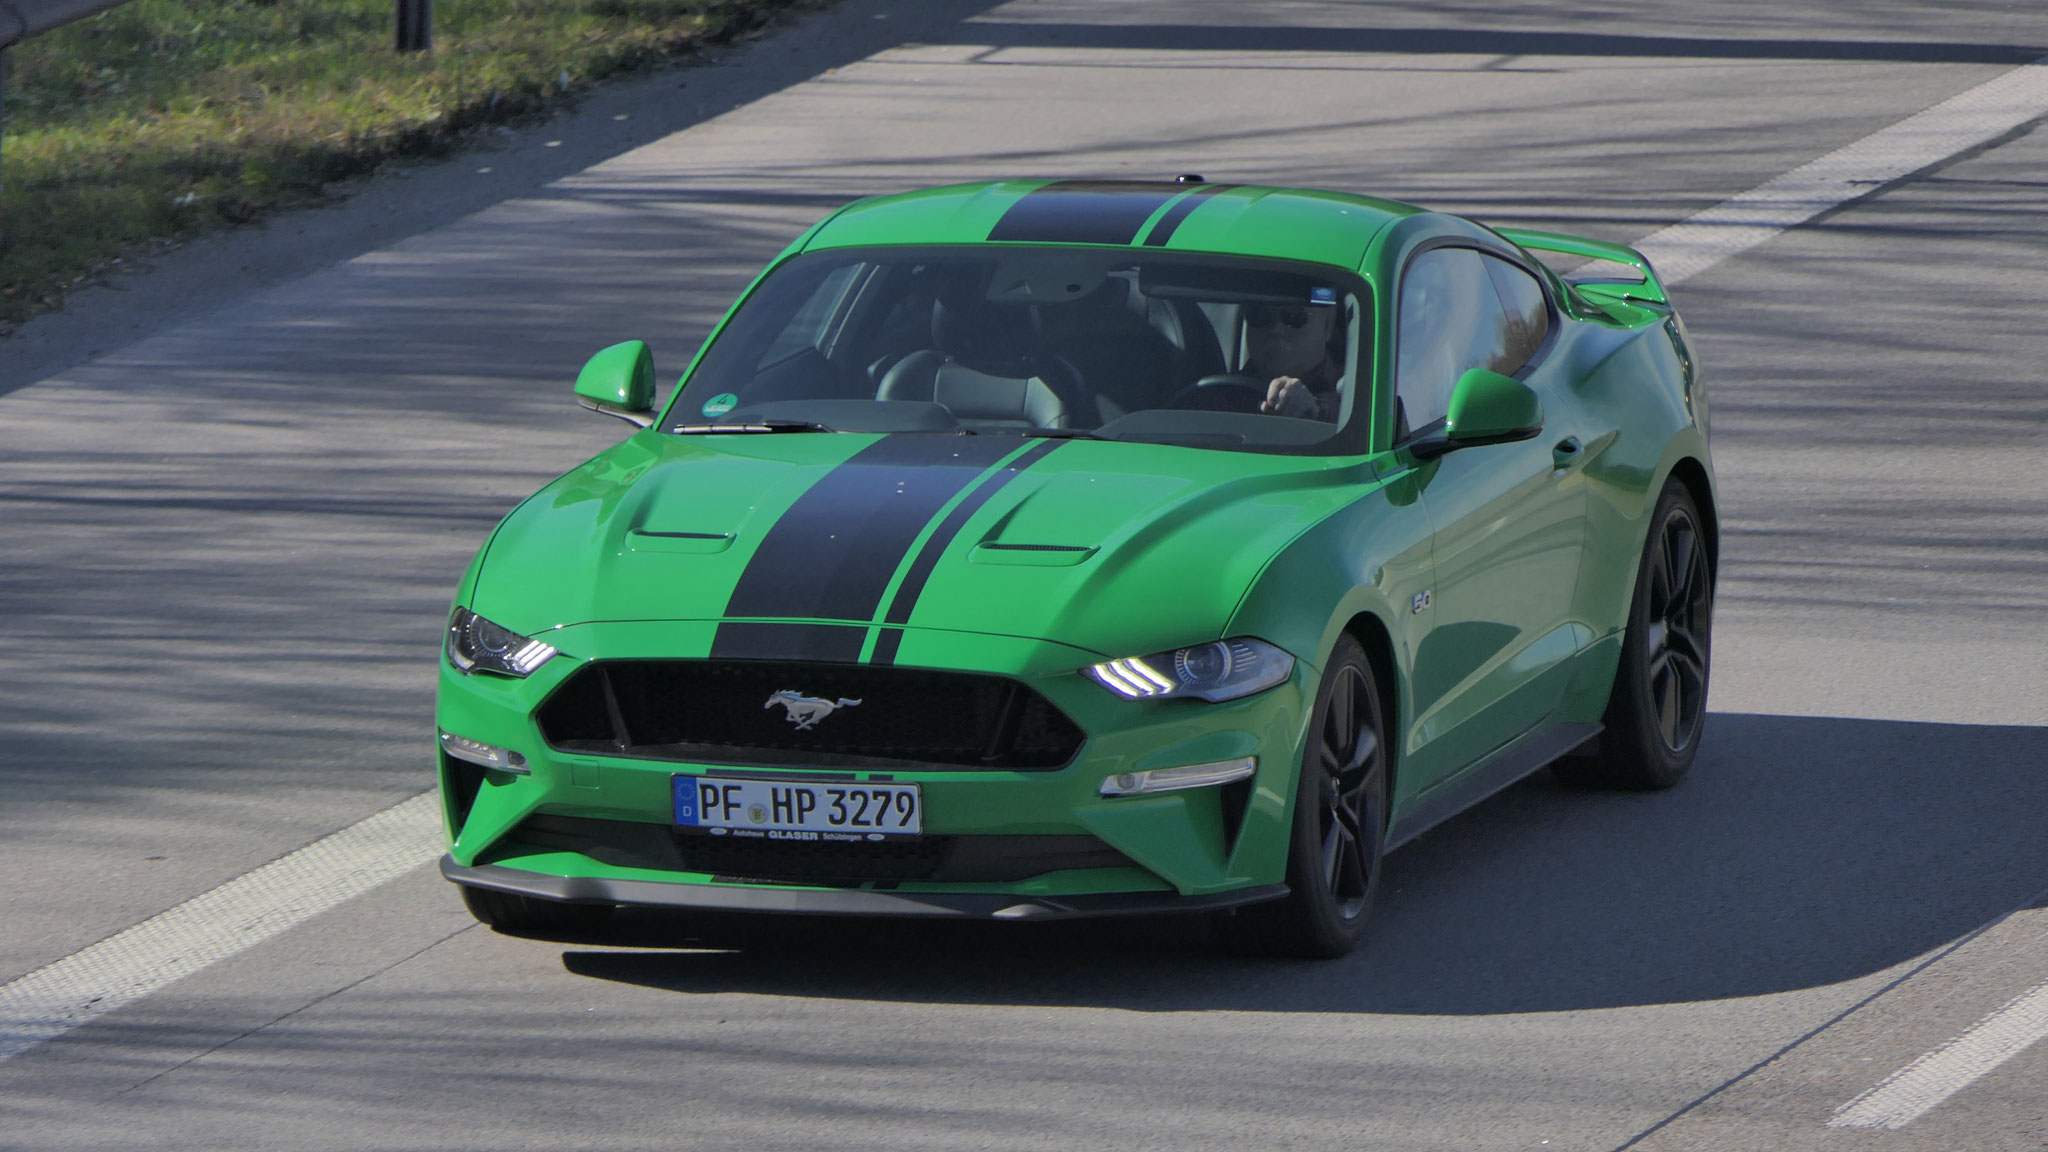 Ford Mustang GT - PF-HP-3279